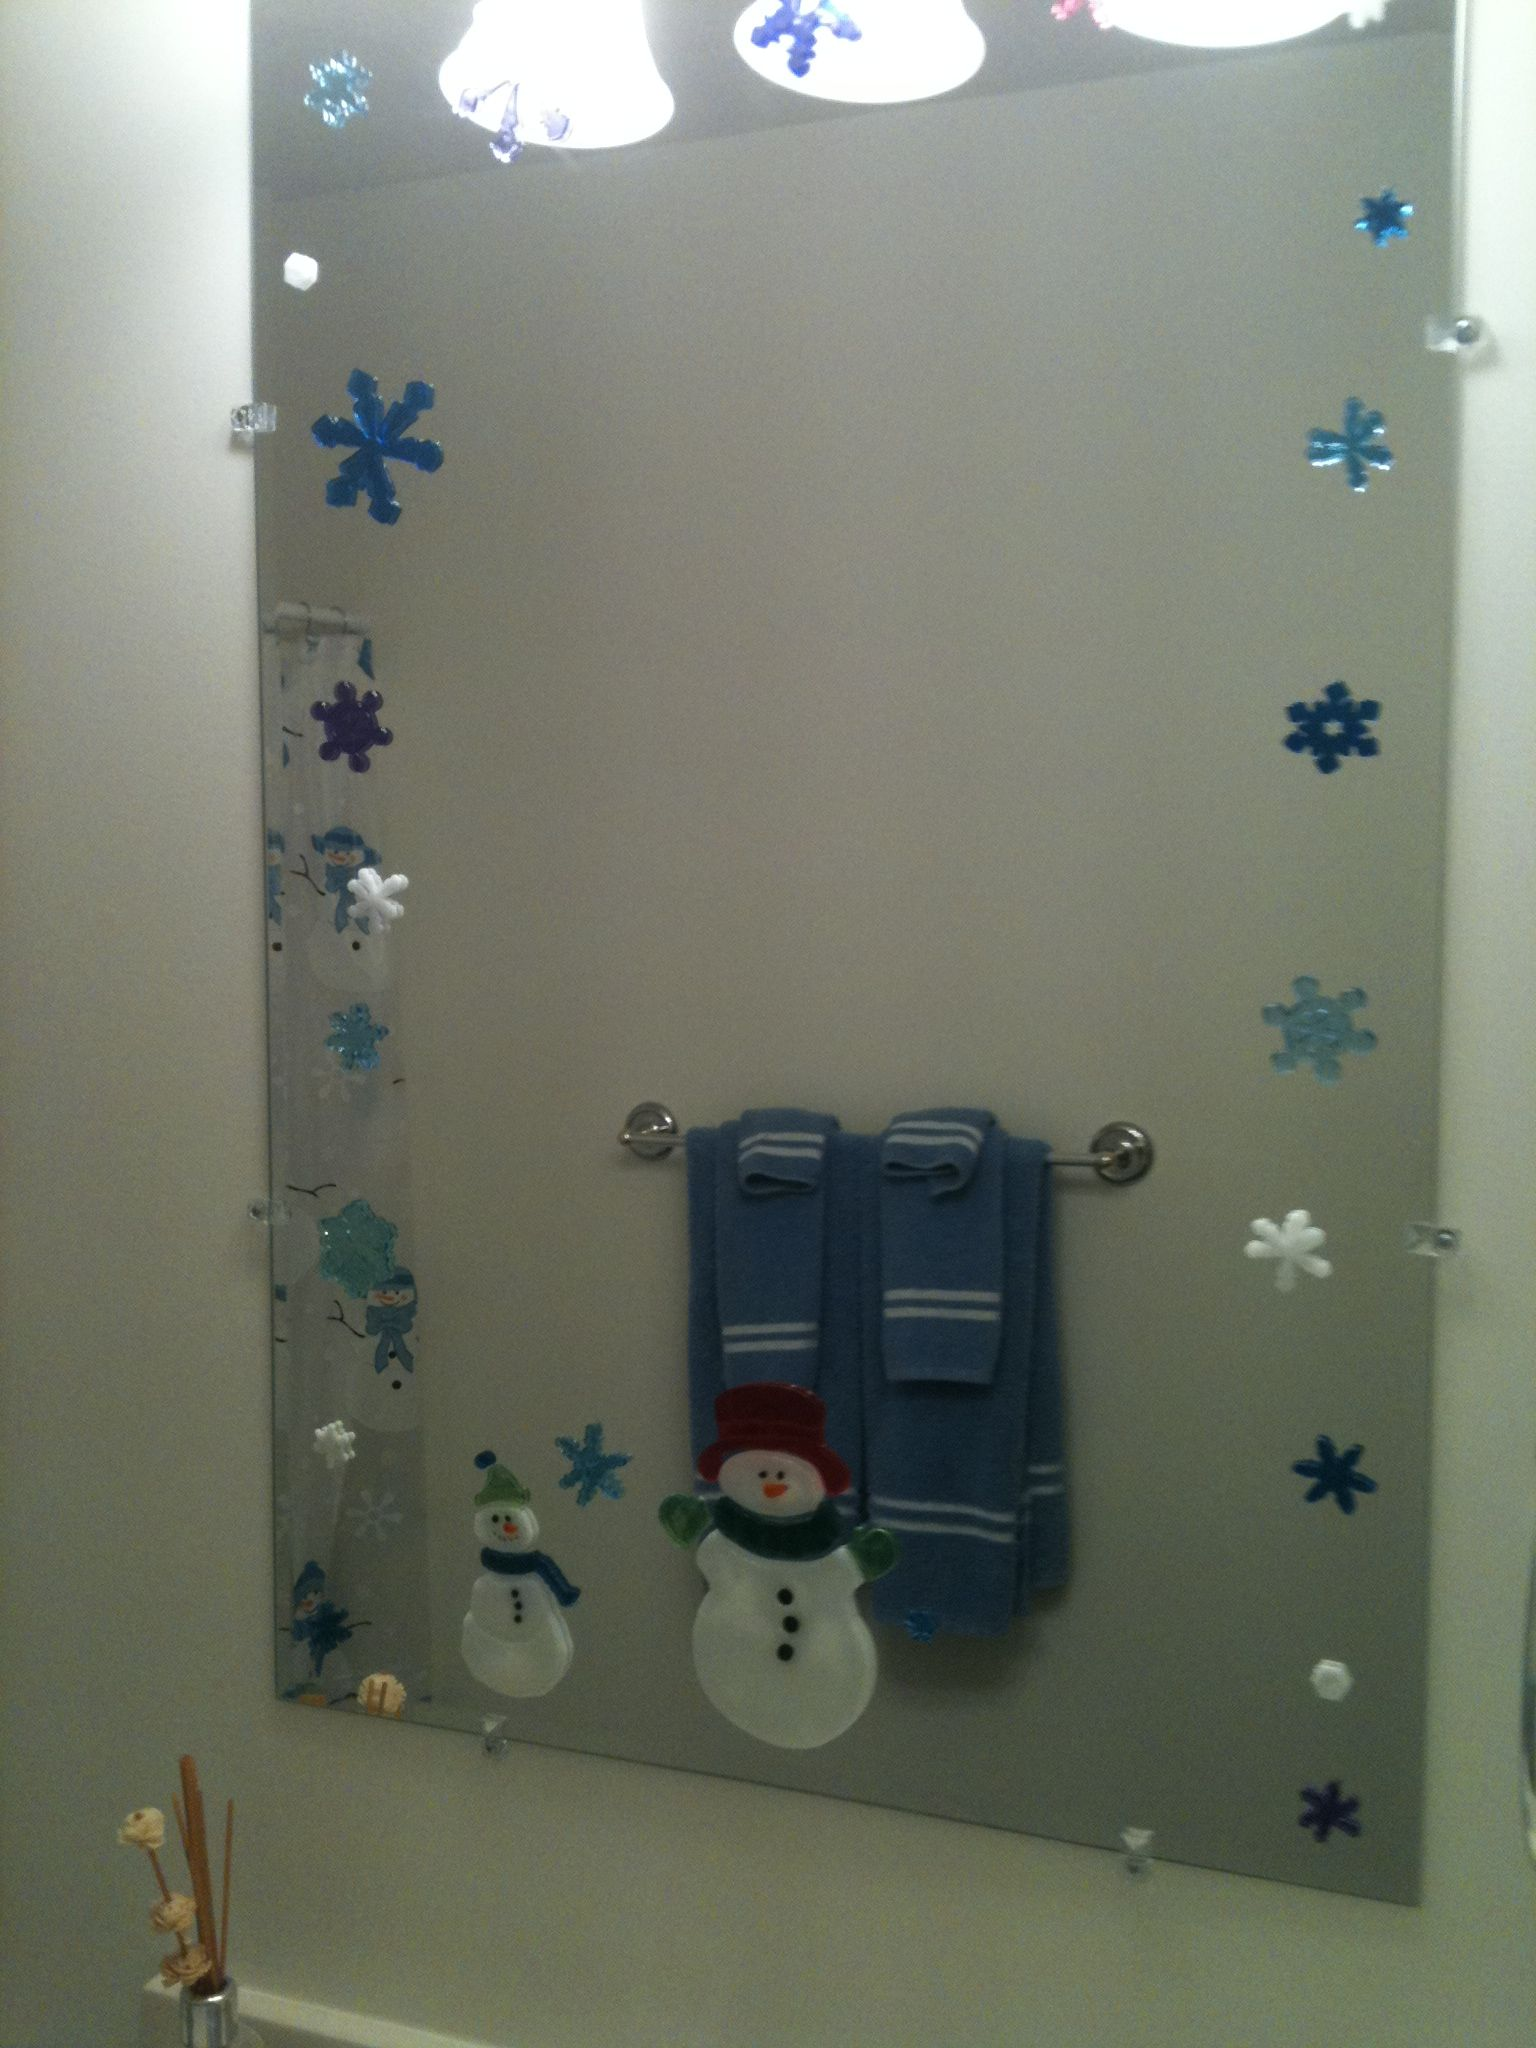 Bathroom Mirrors At Target i use gel window clings on my mirrors. you can get them from the